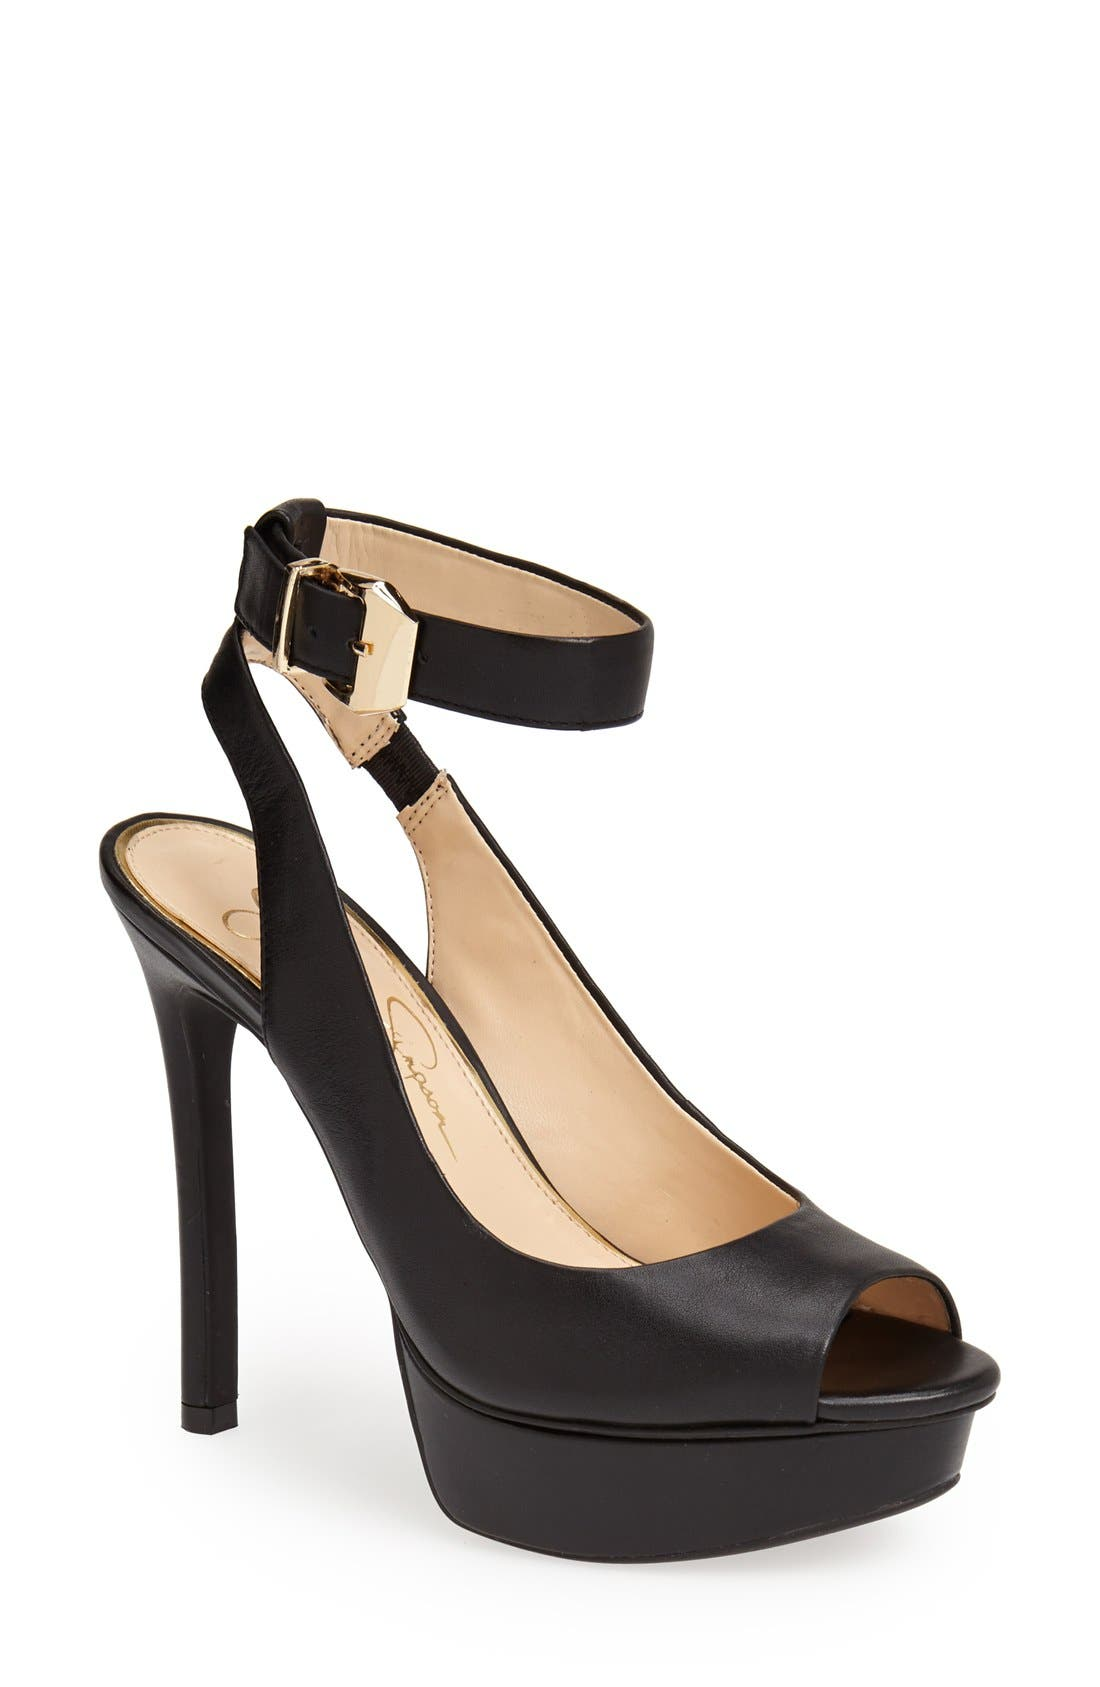 Main Image - Jessica Simpson 'Careen' Platform Sandal (Women)